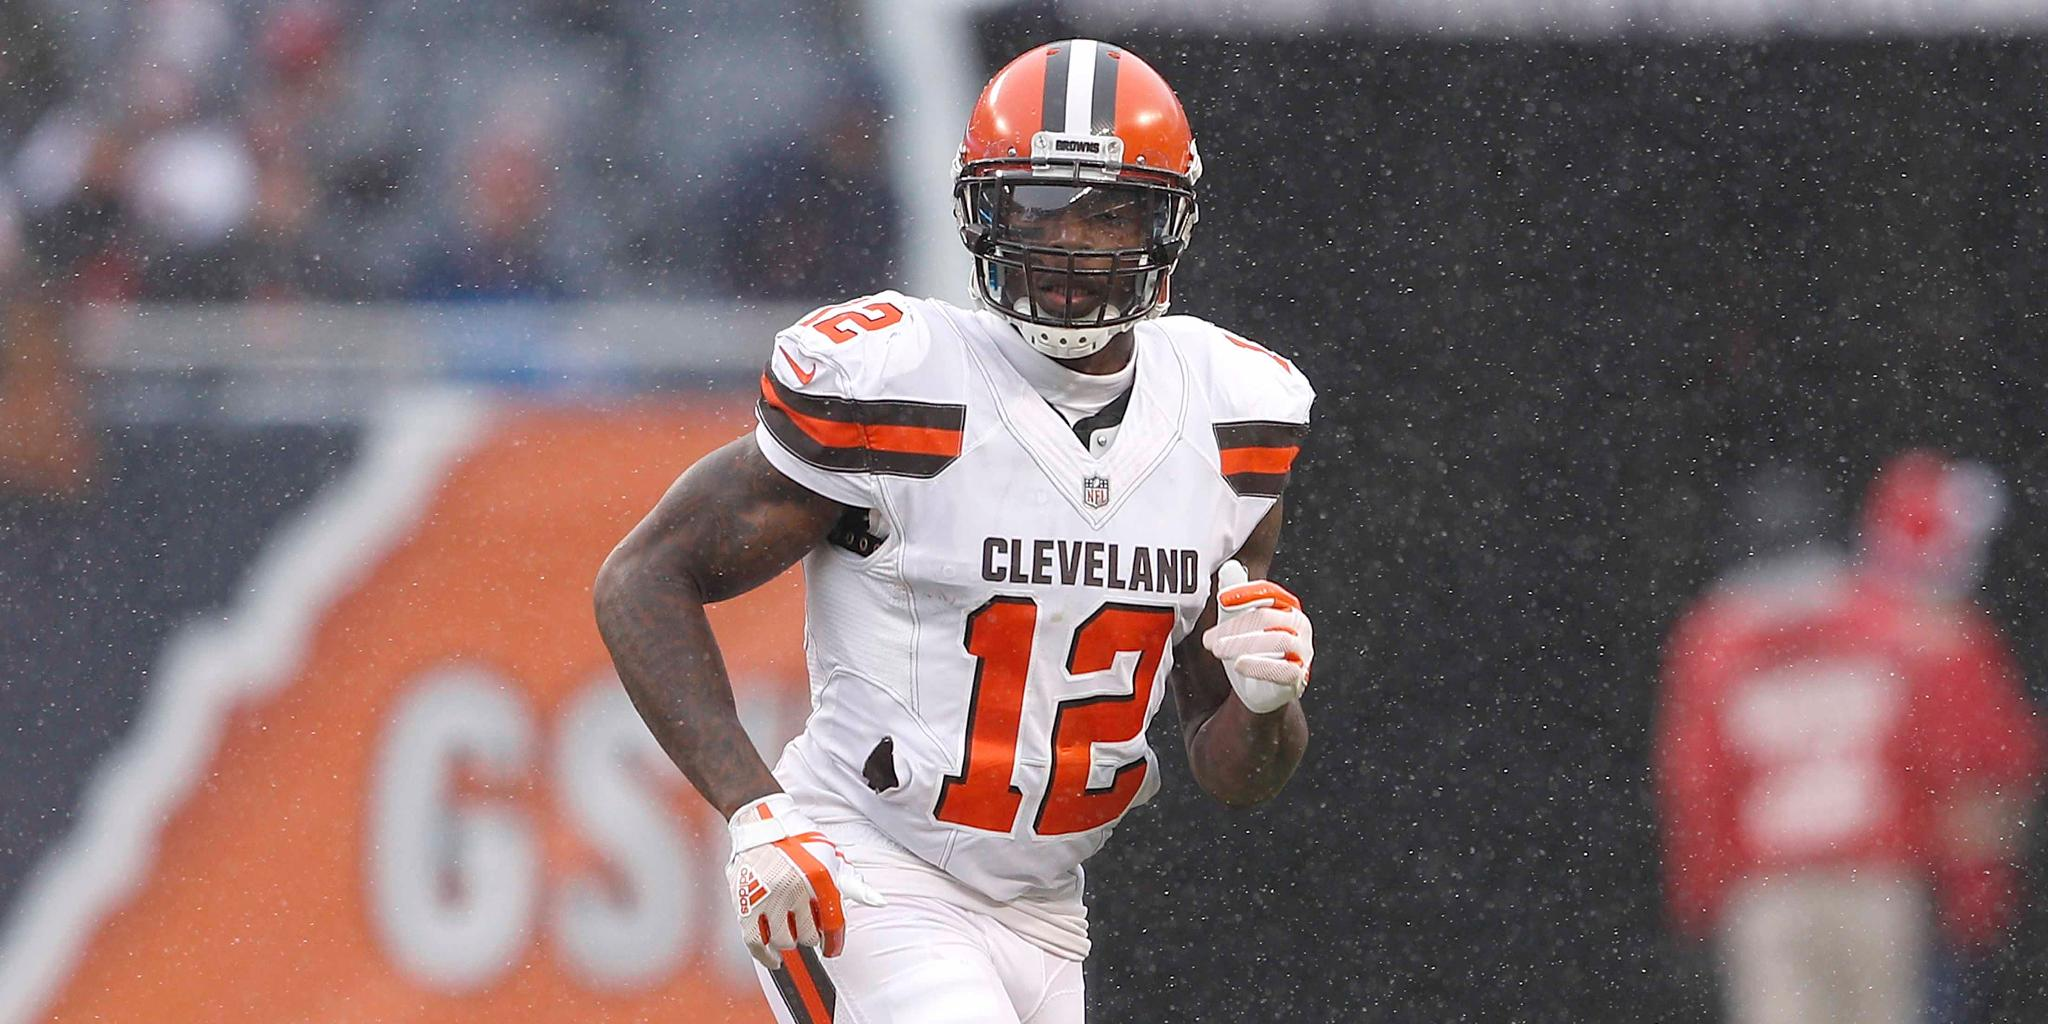 .@JOSH_GORDONXII officially signs tender with @Browns: https://t.co/mKxbN0JLlb https://t.co/iL9fn1pWJw